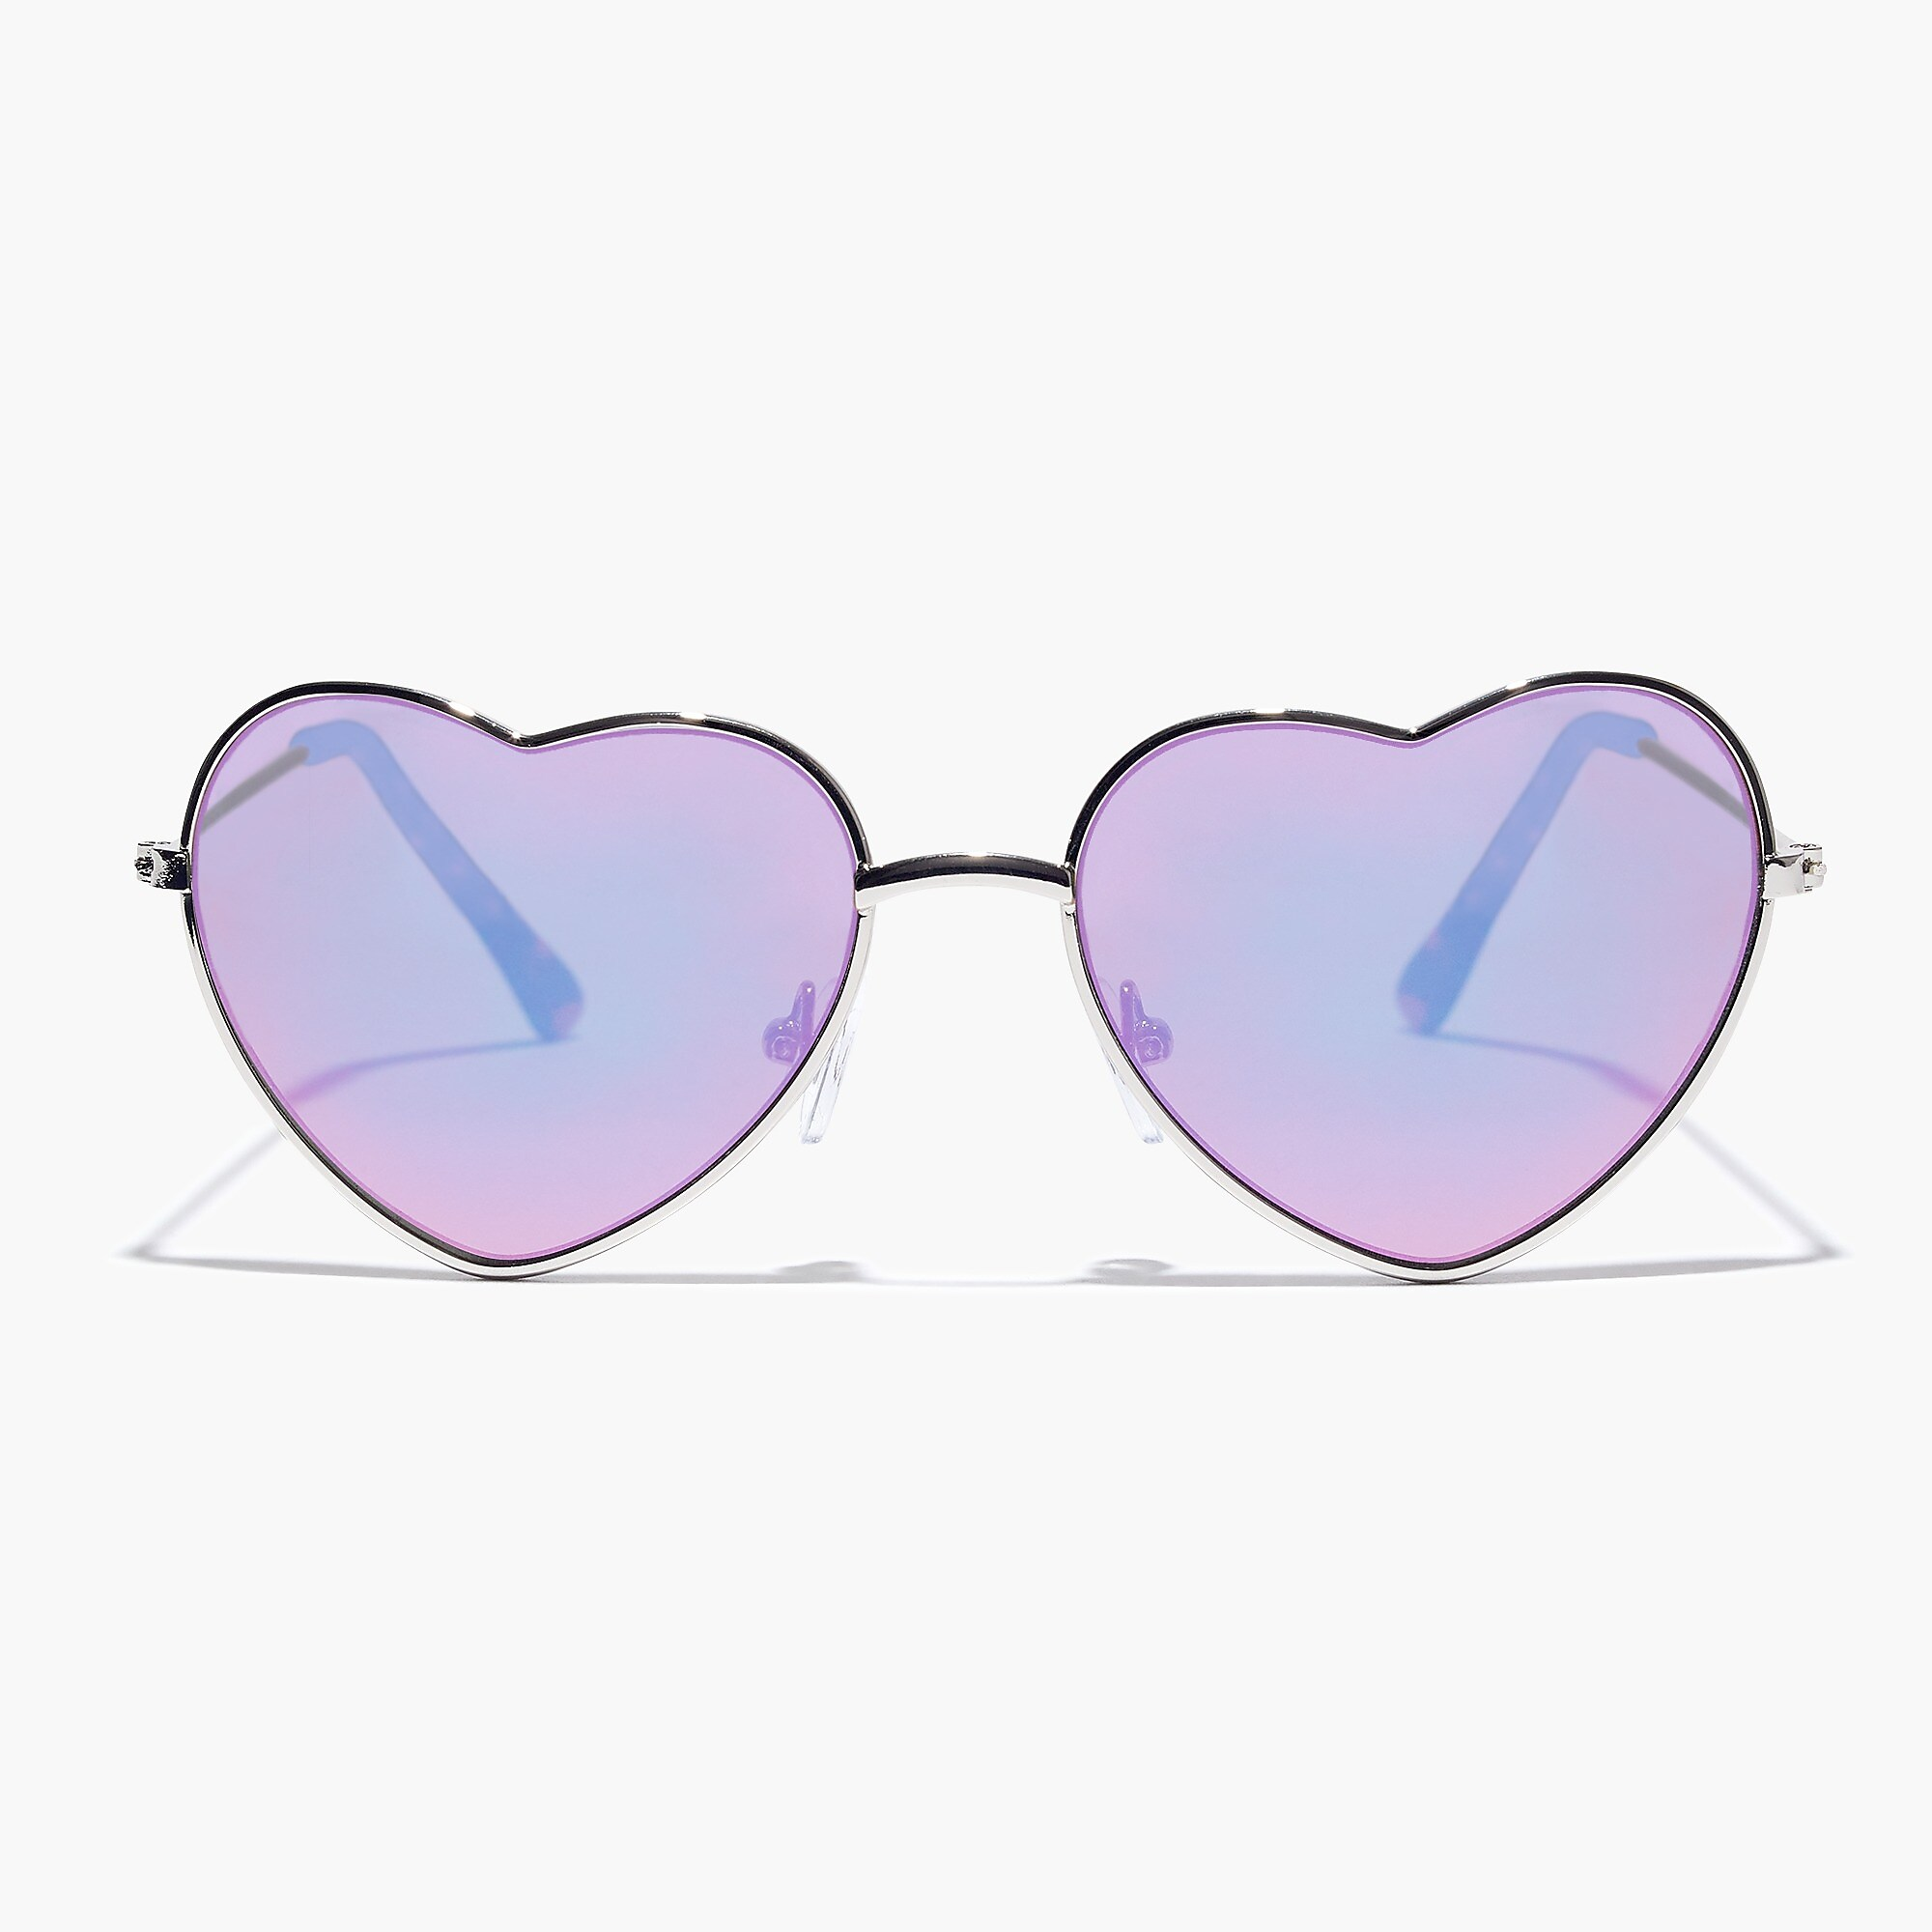 J.Crew heart-shaped sunglasses